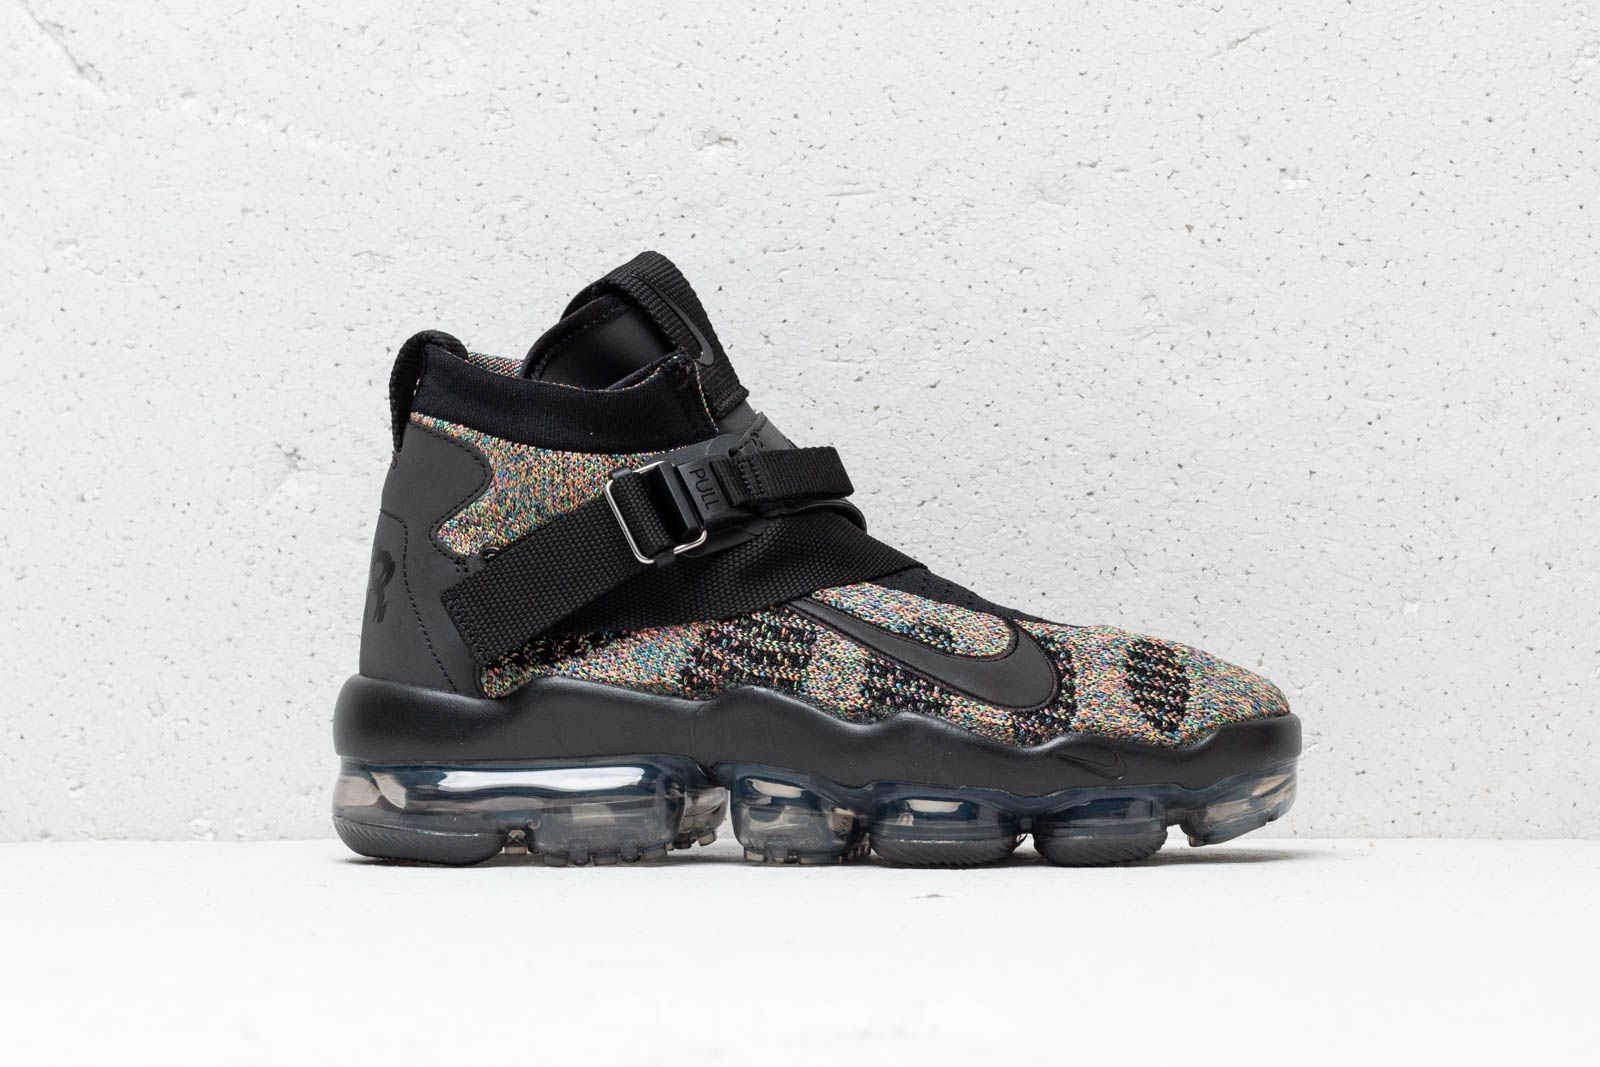 9474822e5ef53 Nike Air Vapormax Premier Flyknit Black  Signal Blue-Green Strike at a  great price